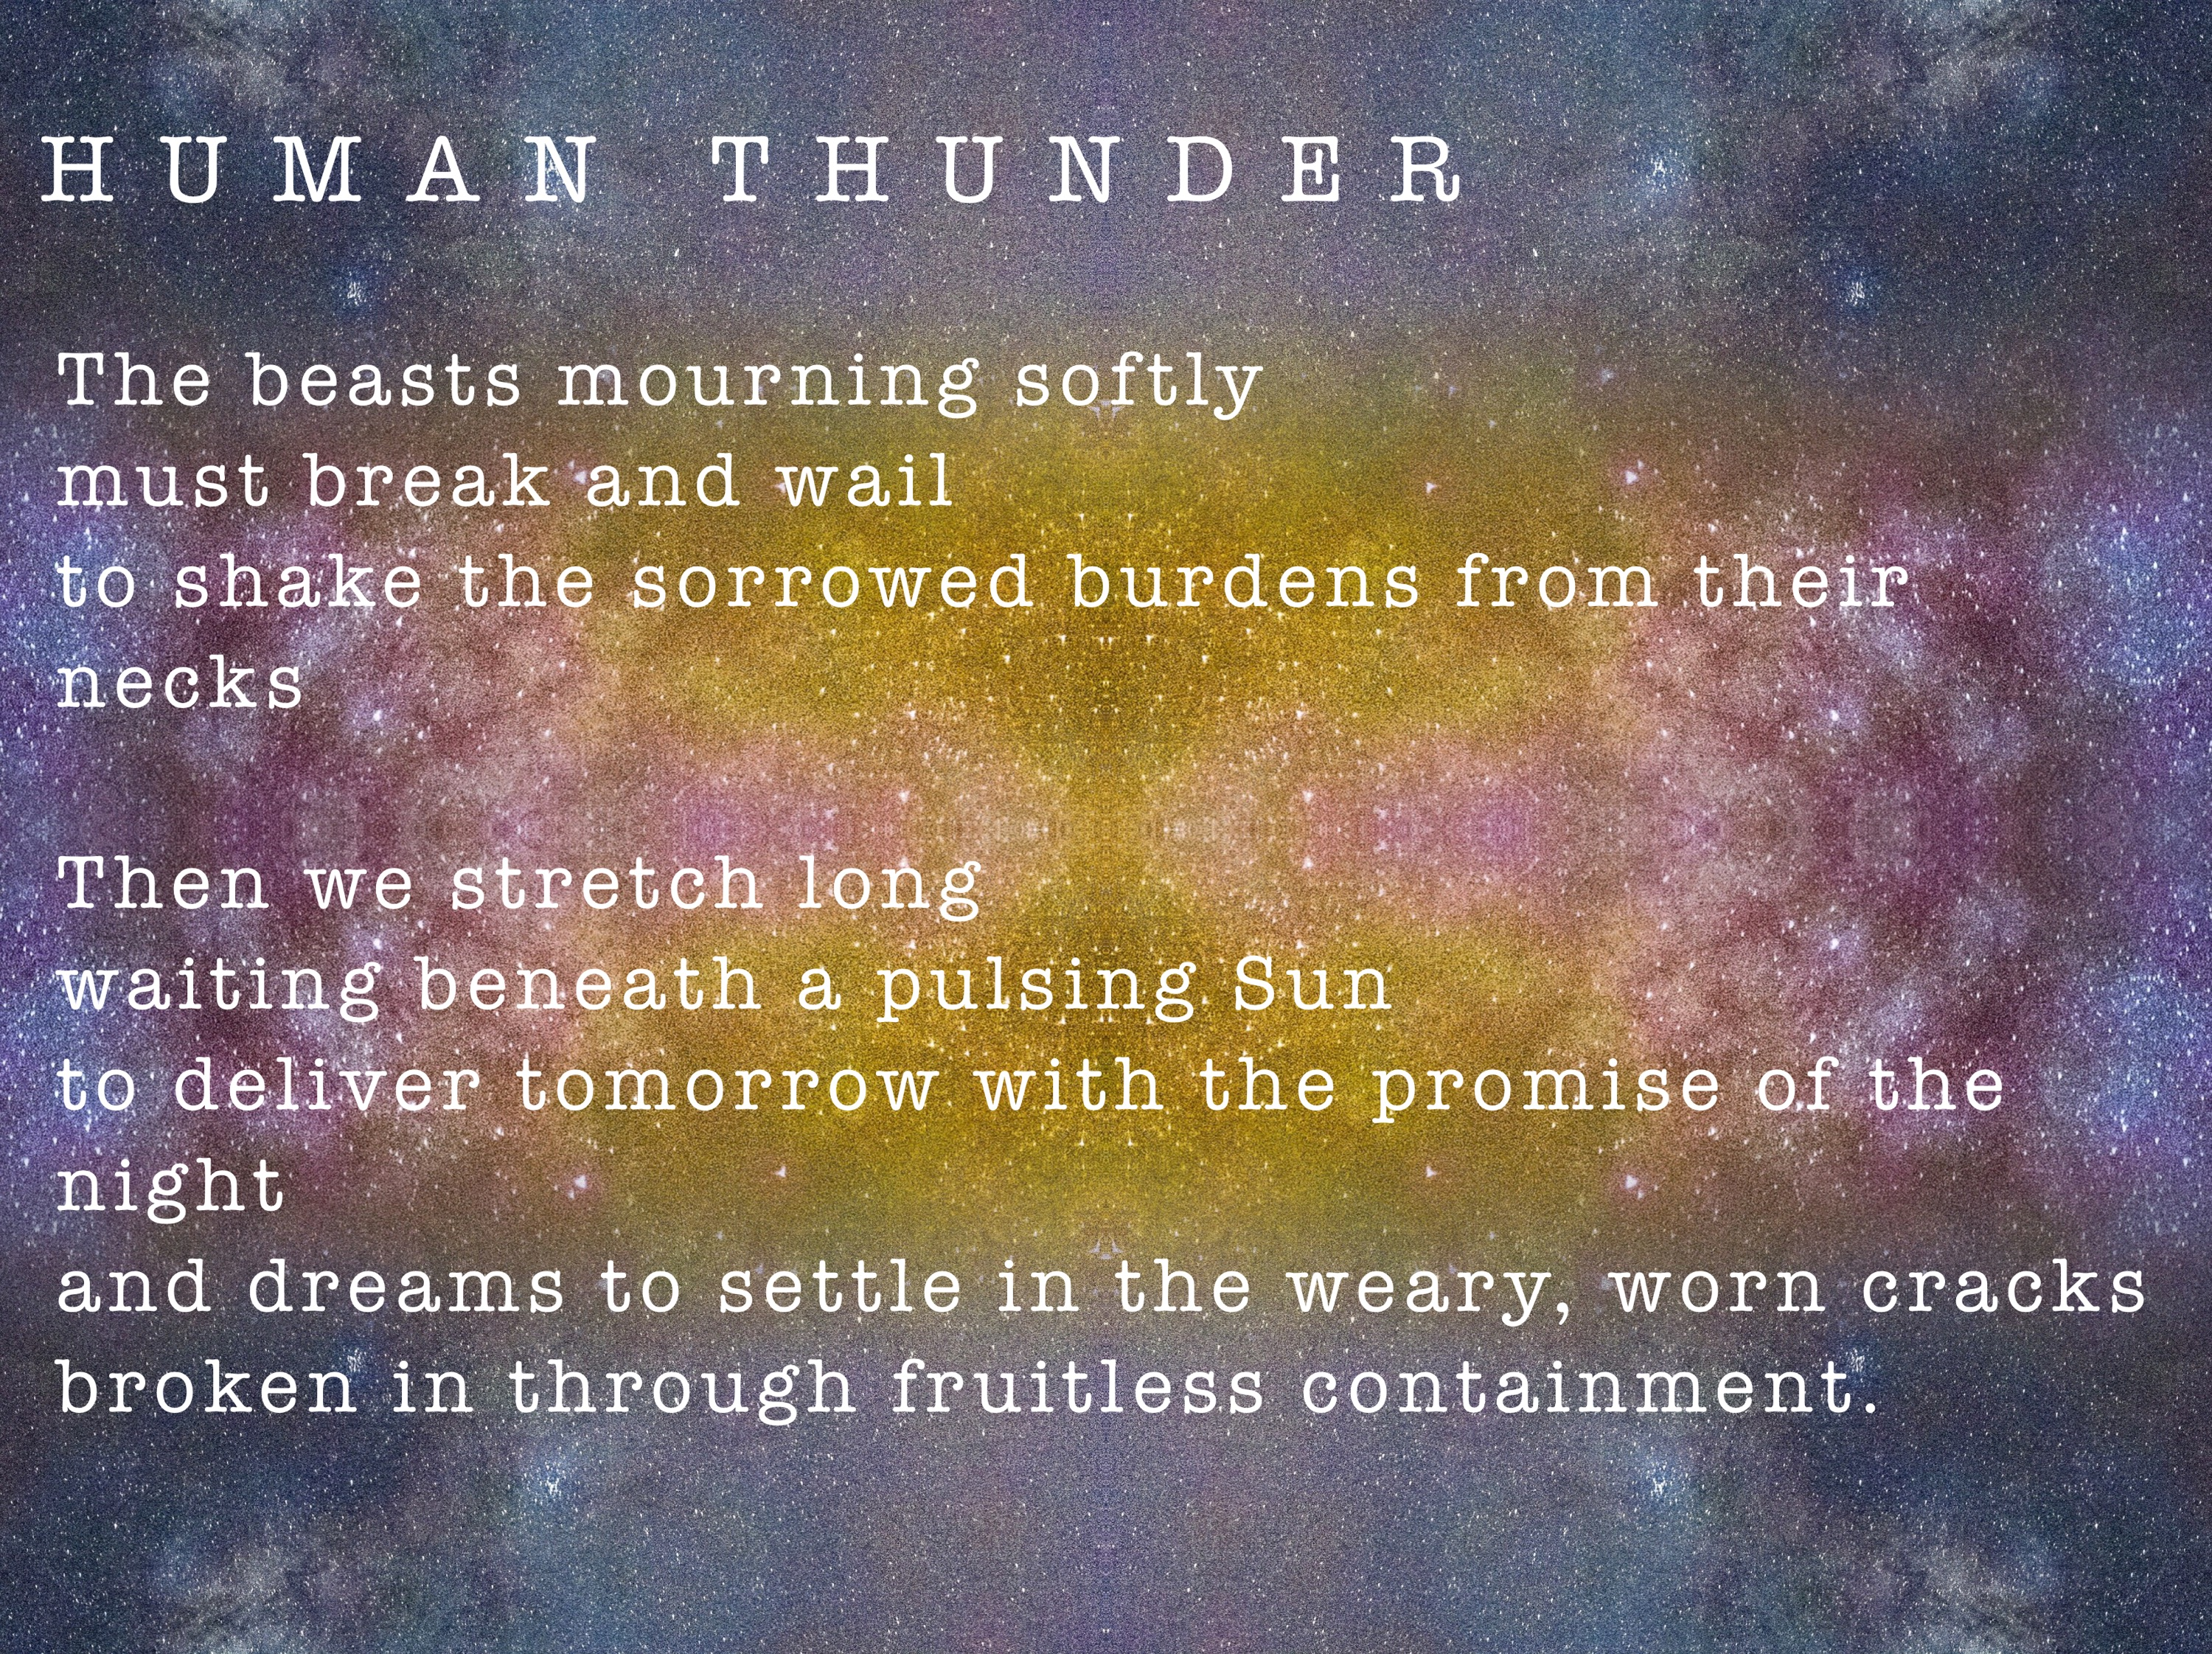 The original poem Human Thunder by Megan J. Alexander